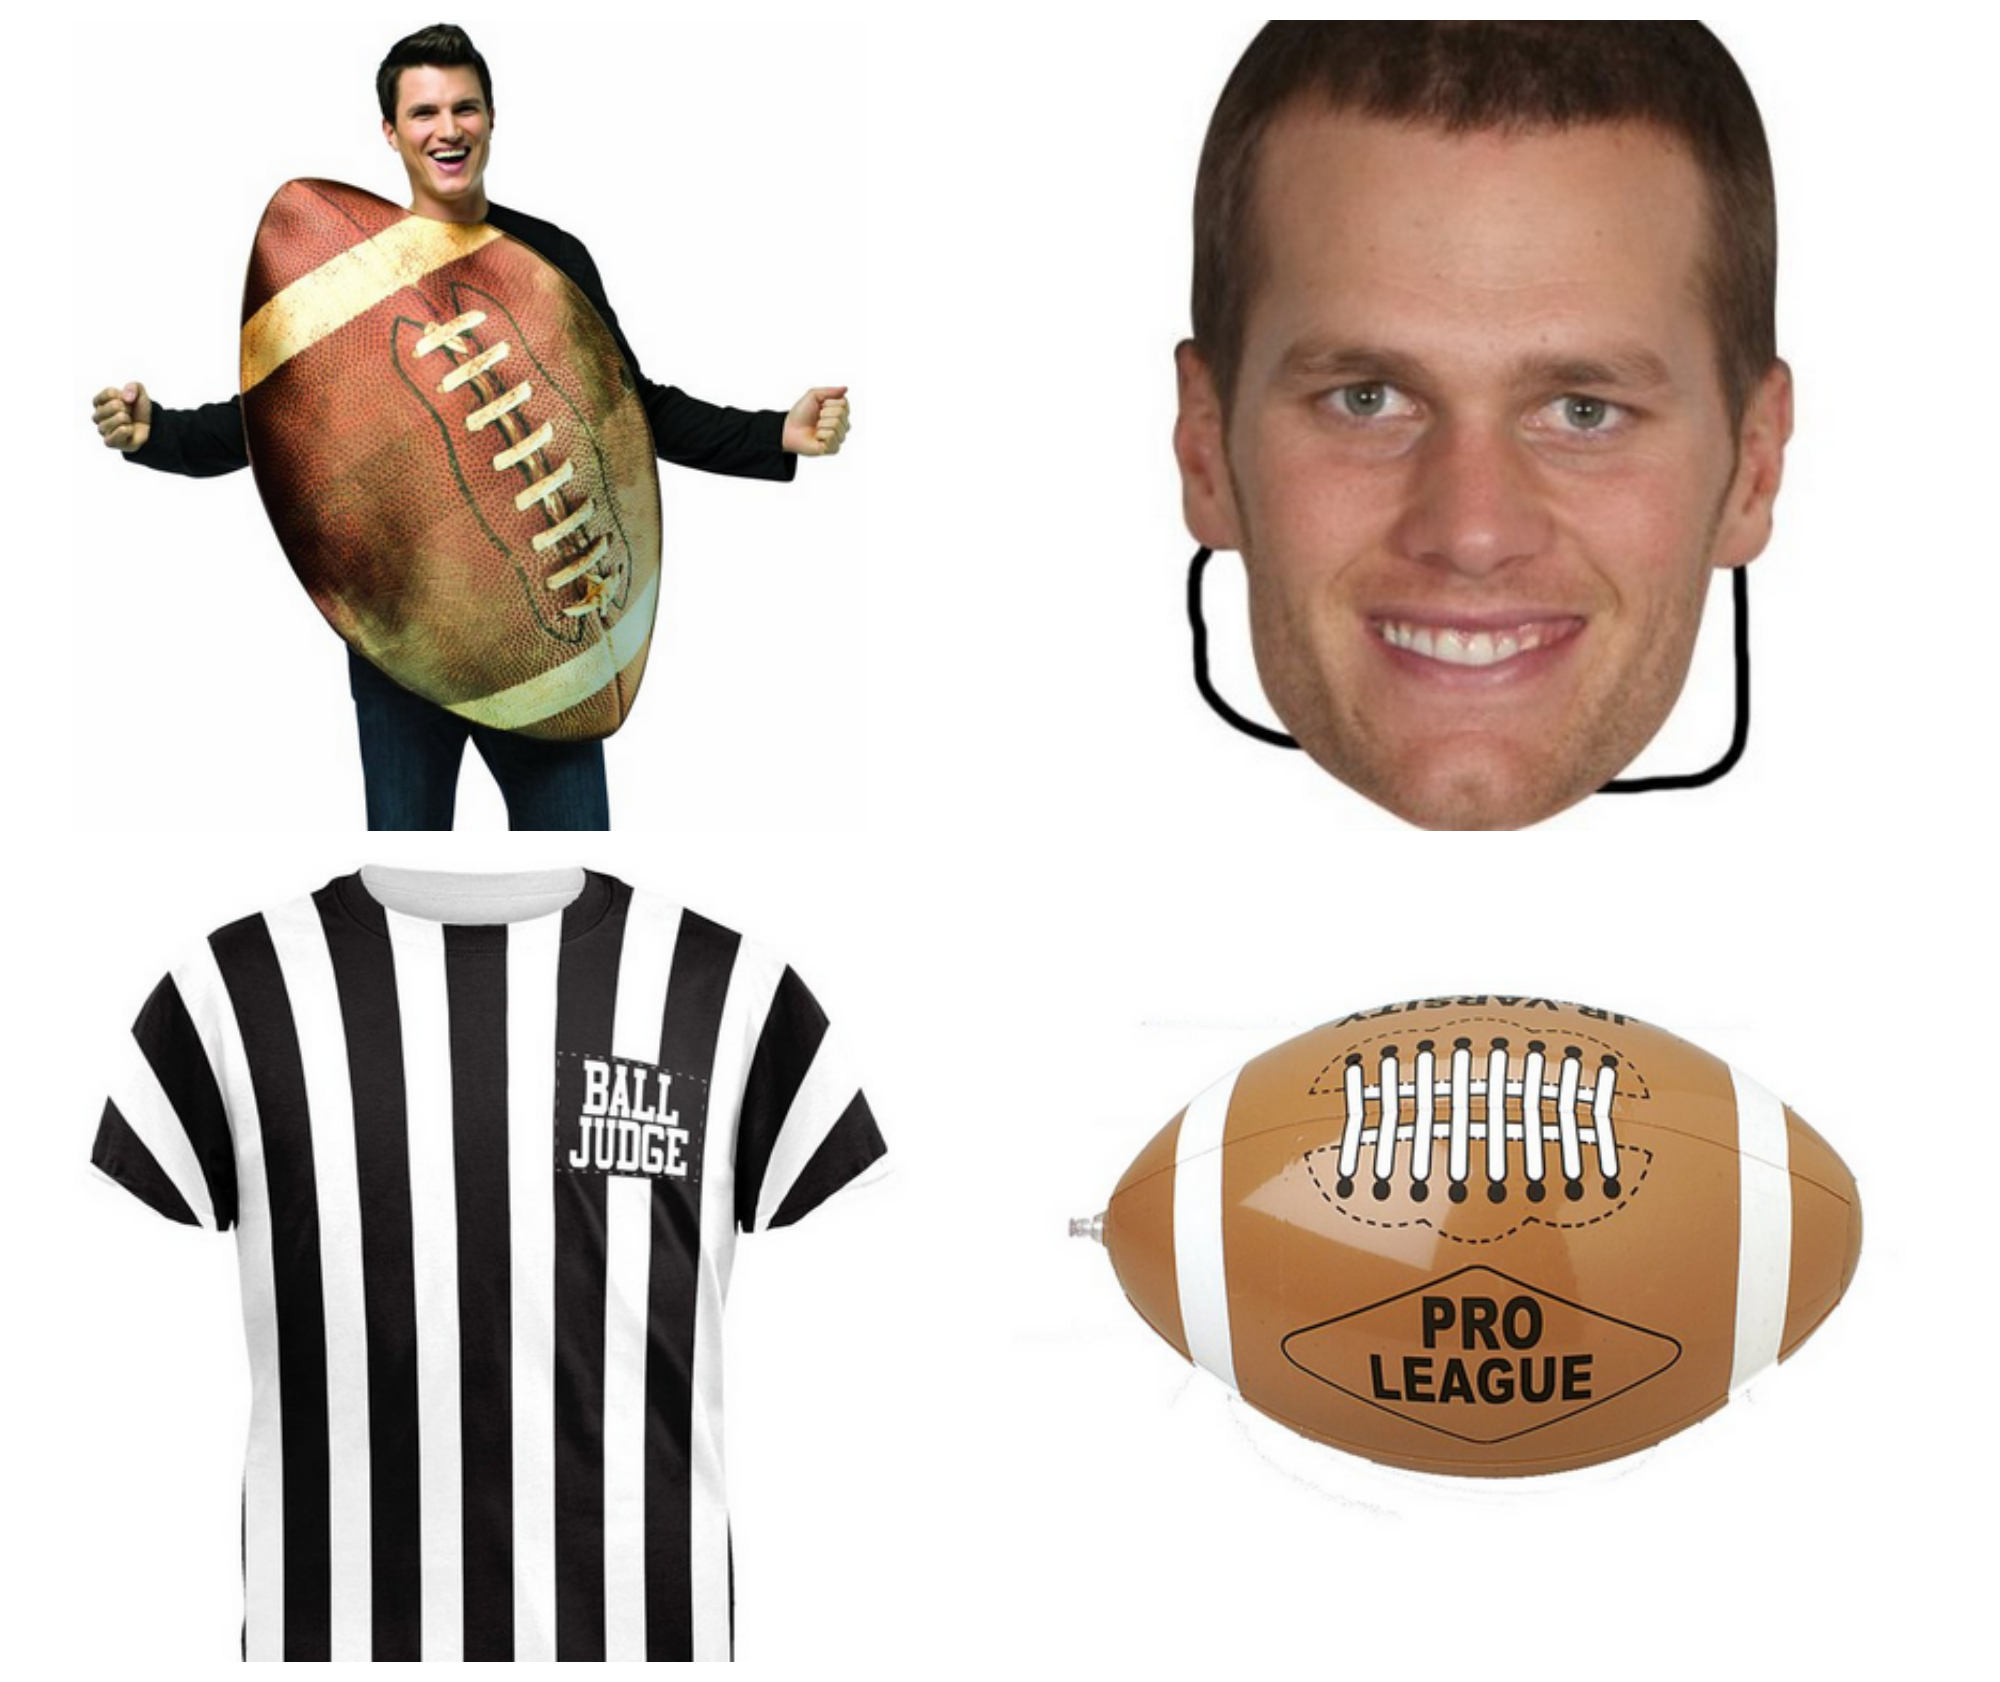 Deflategate Halloween costume props  sc 1 st  AOL.com & The 10 best Halloween costumes inspired by pop culture - AOL Lifestyle